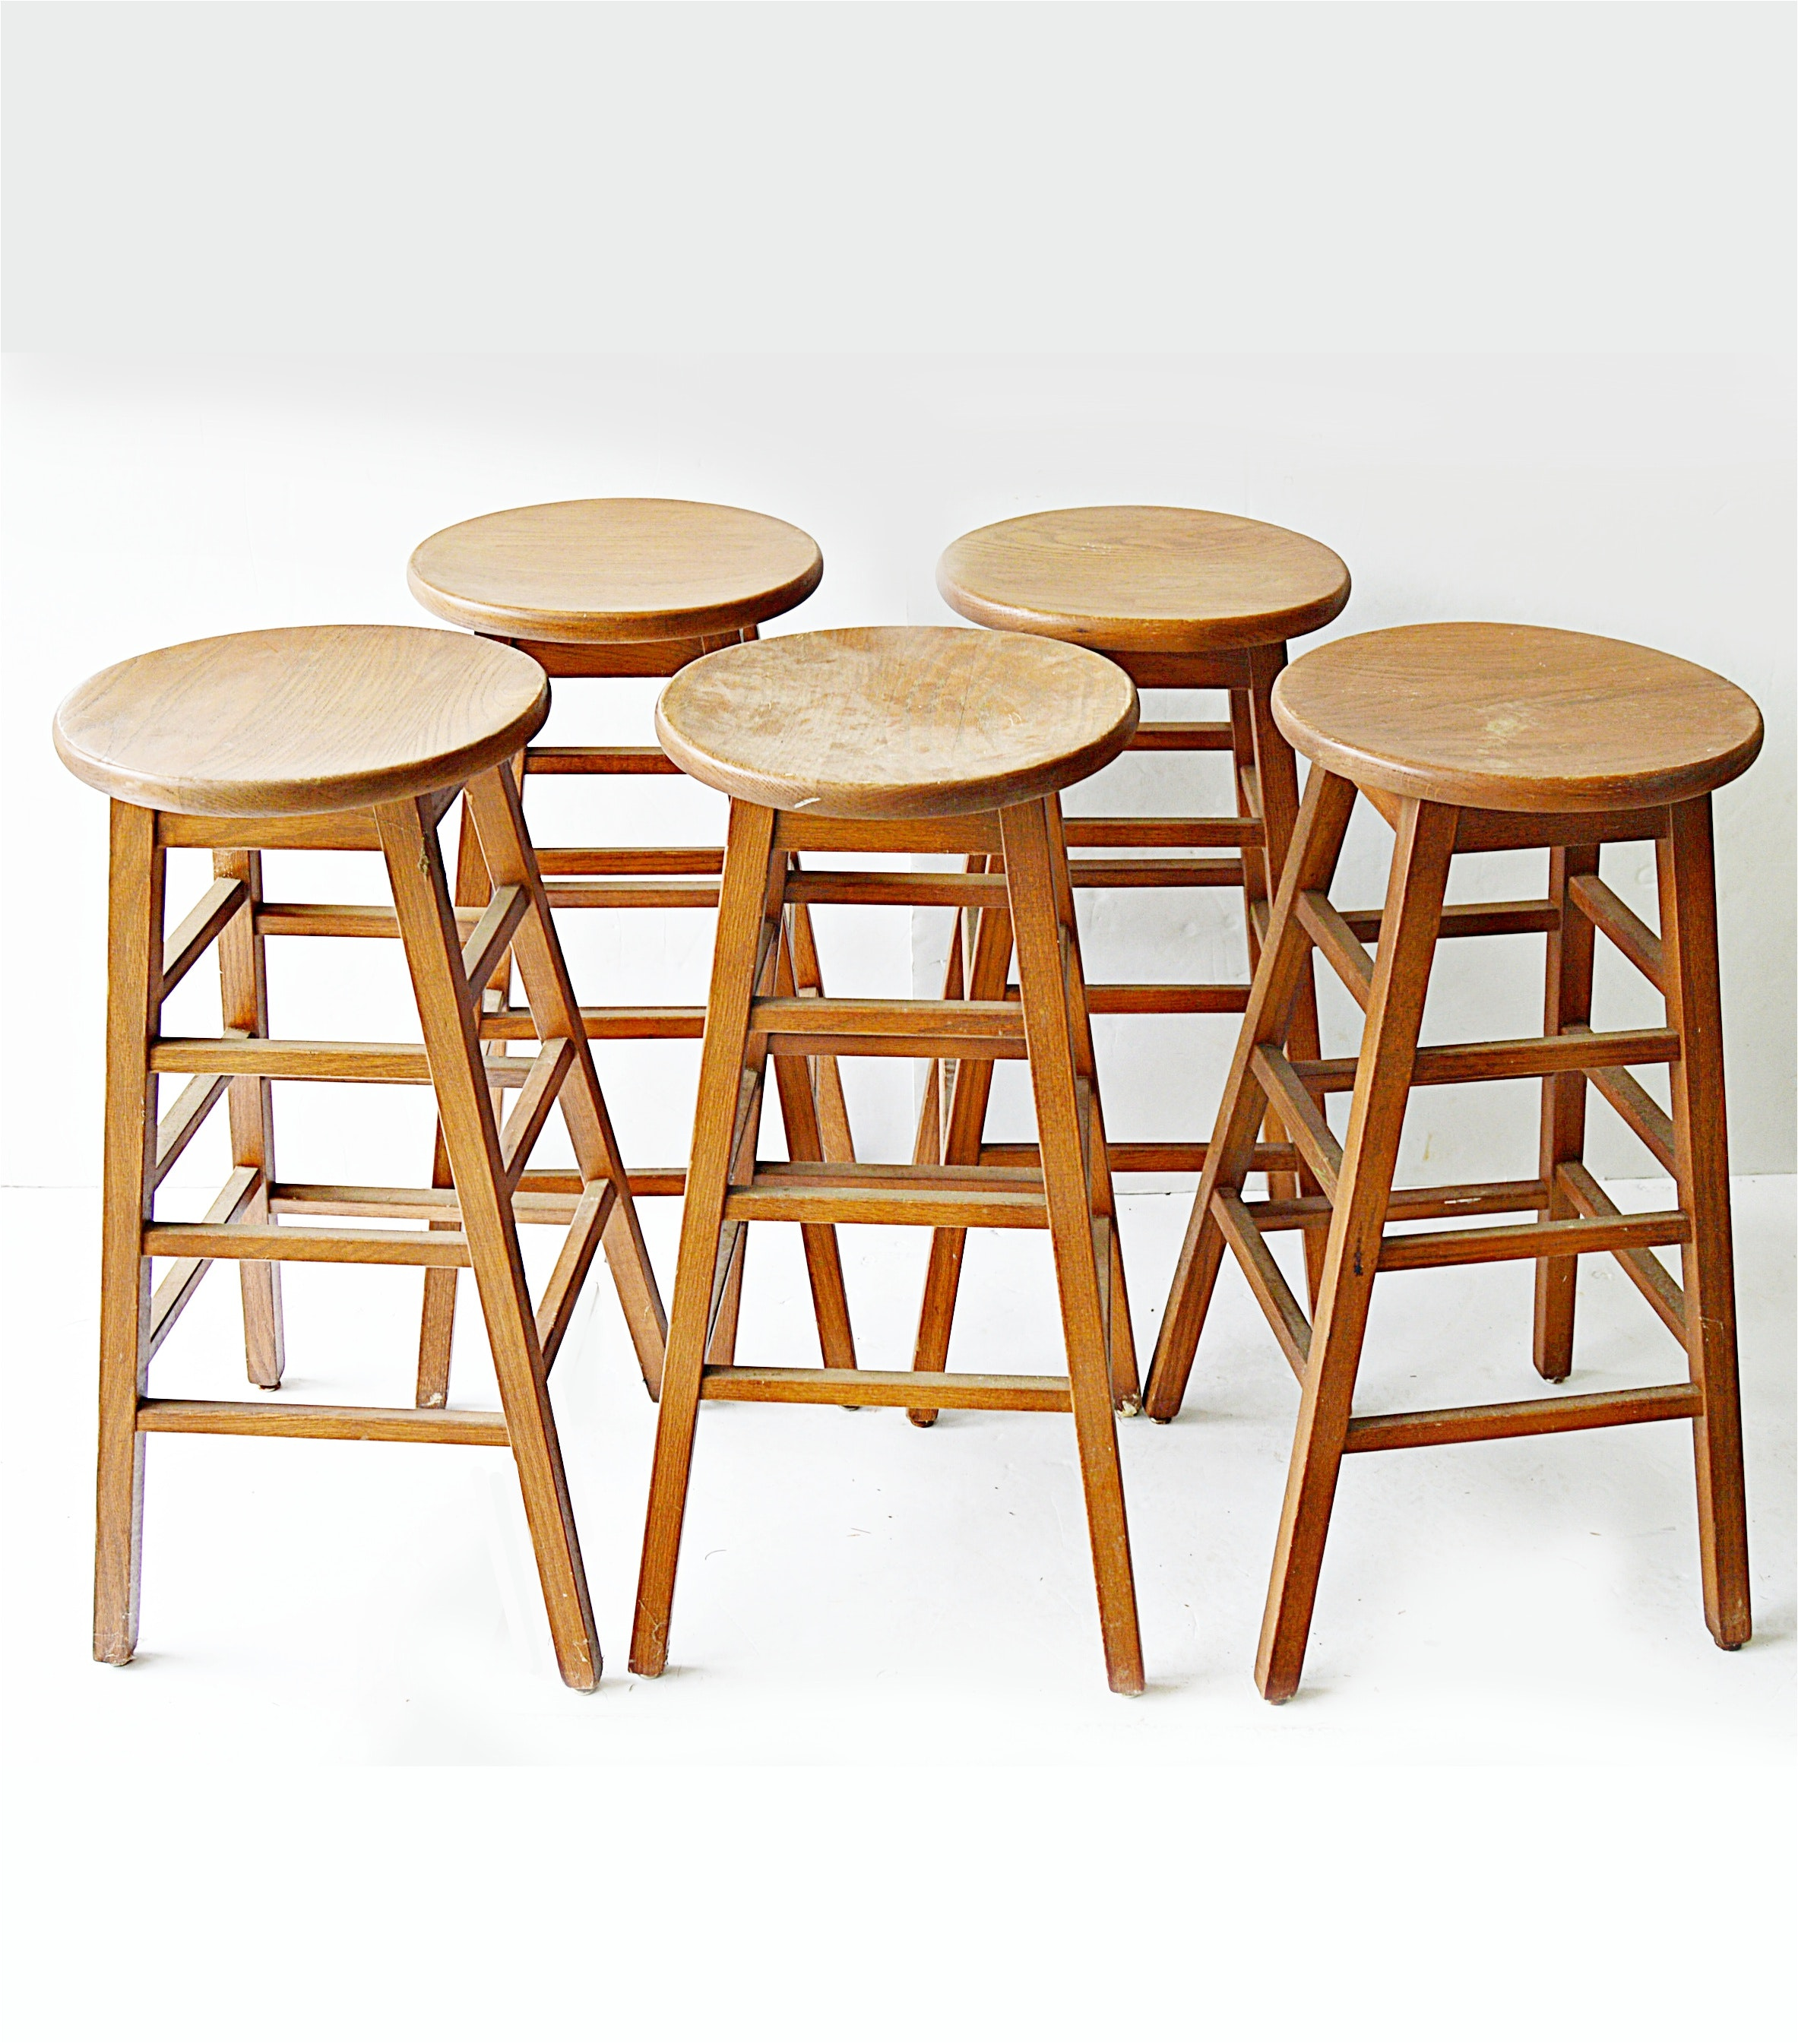 Five Wooden Bar Stools